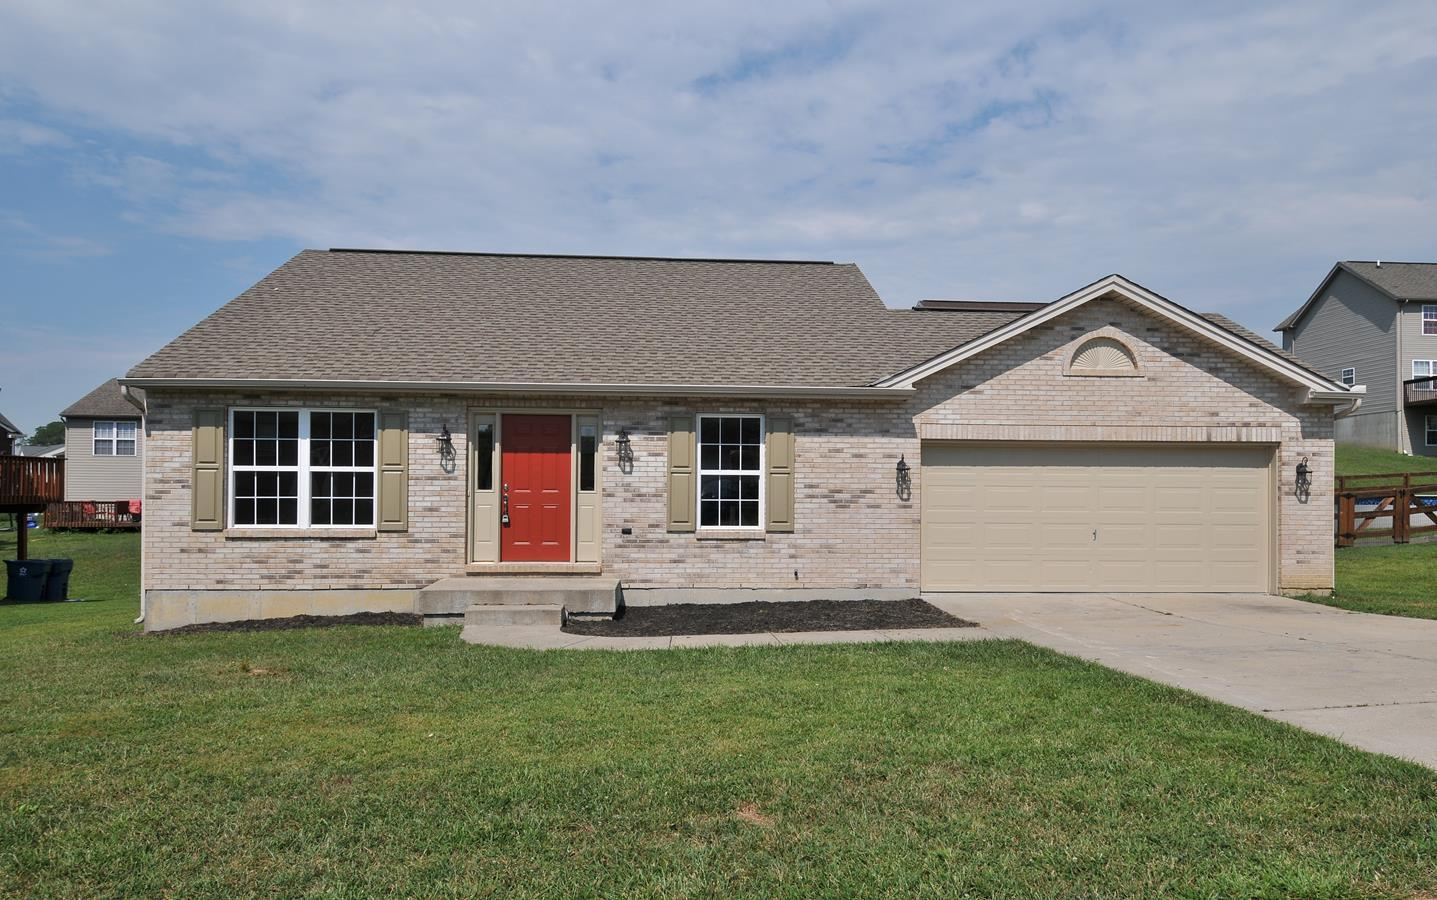 Photo 1 for 152 Eagle Creek Dr Dry Ridge, KY 41035